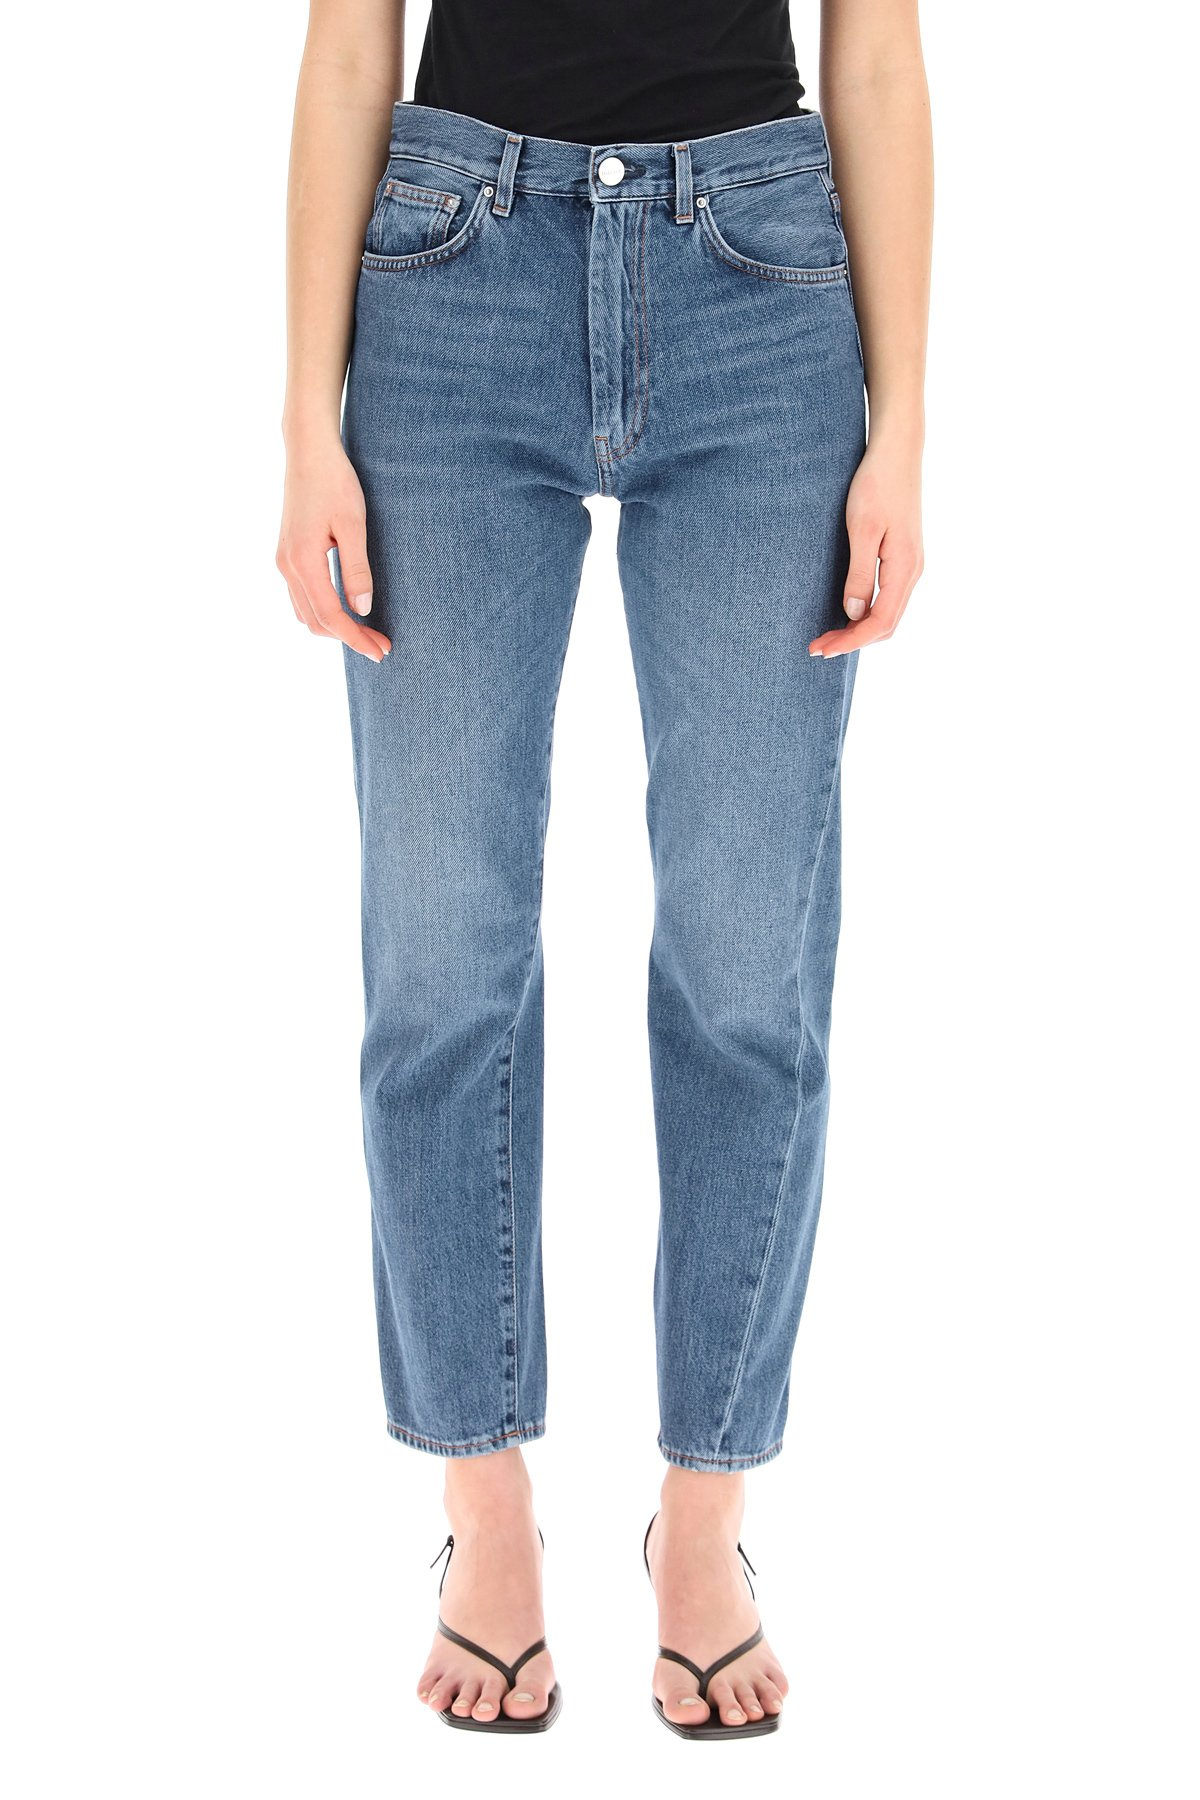 Toteme jeans twisted seam